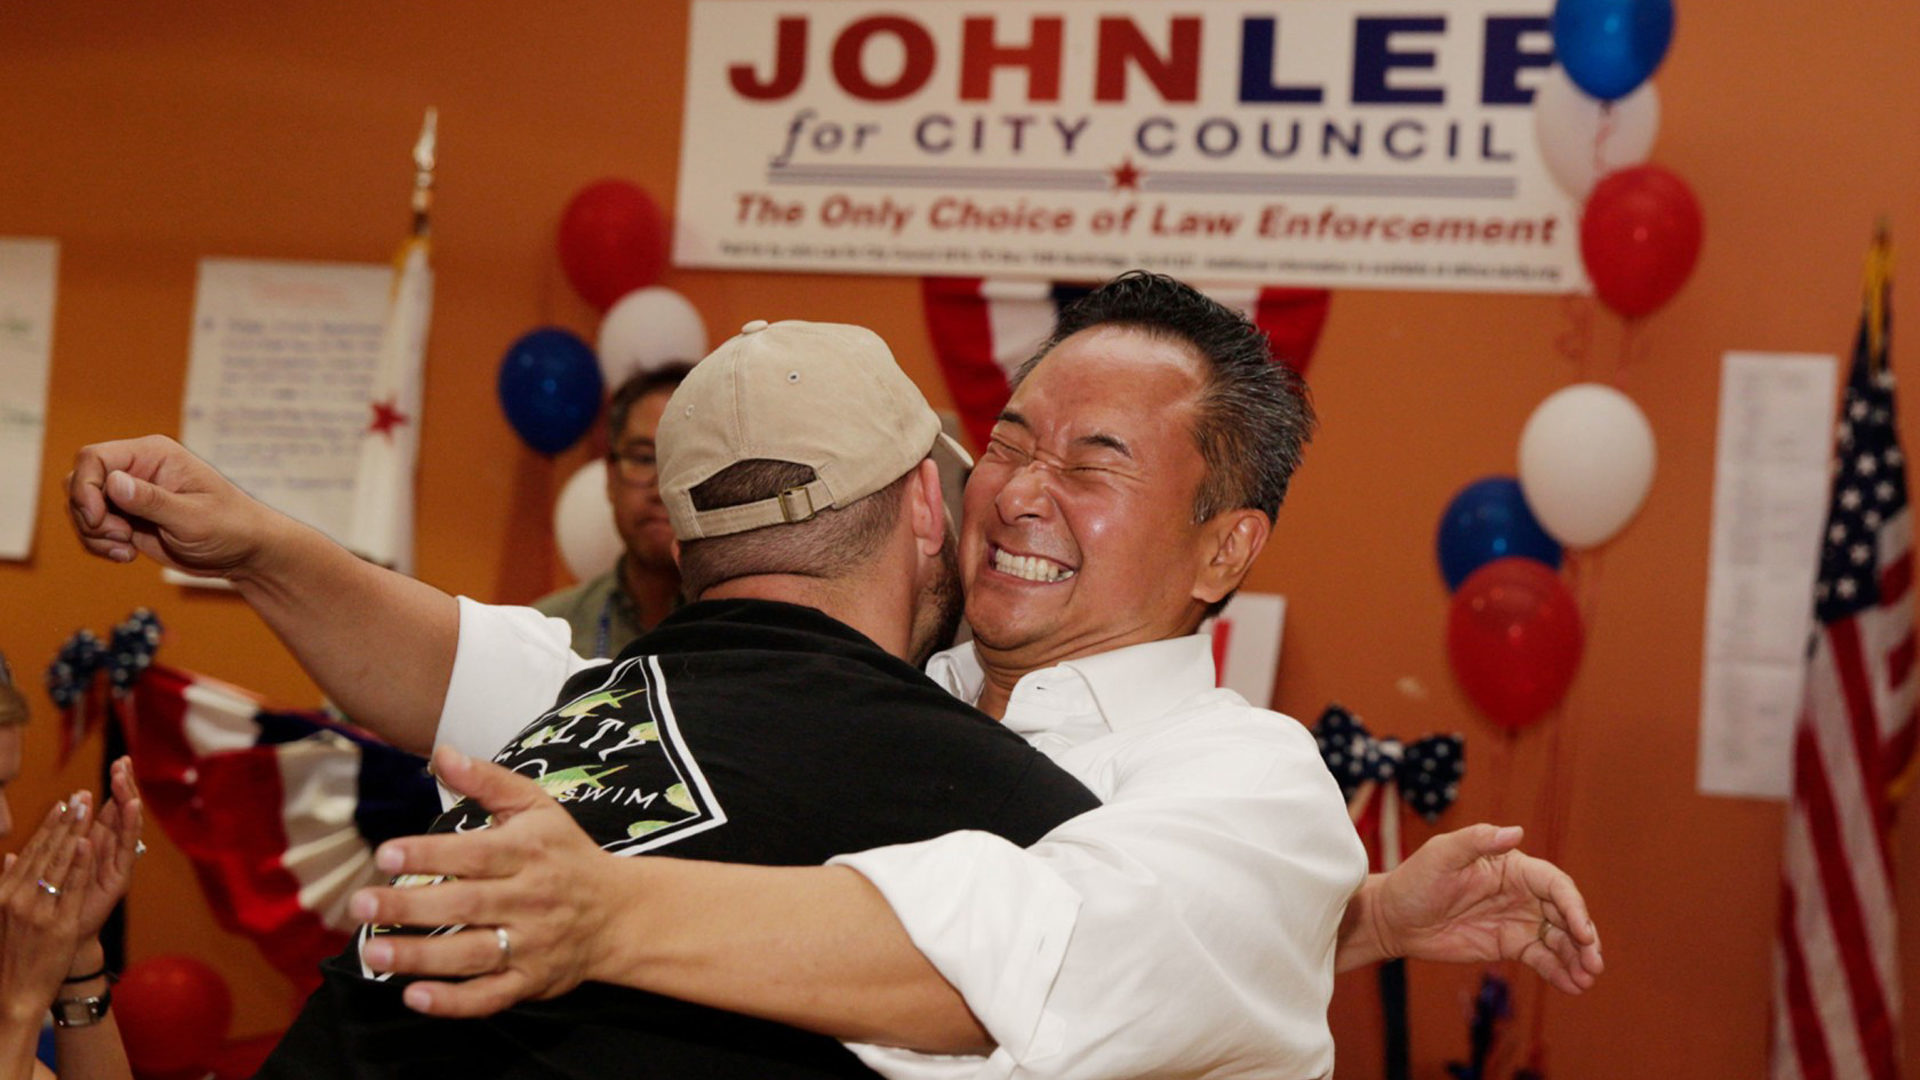 Newly elected councilman John Lee hugs a longtime friend during his election night party. (Credit: Liz Moughon / Los Angeles Times)